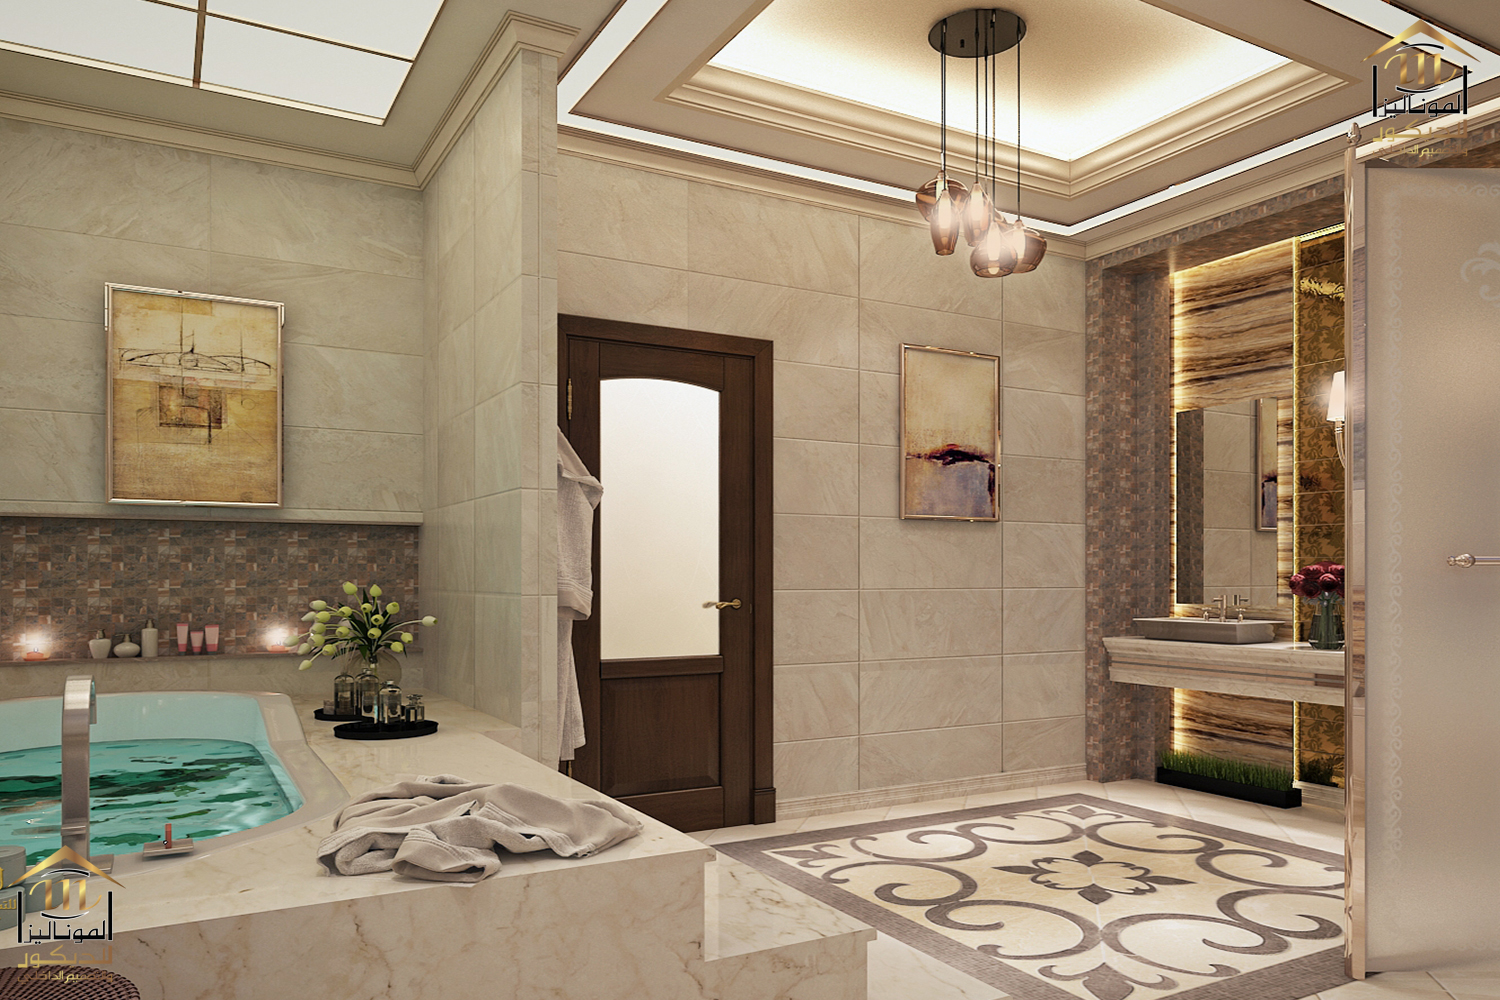 almonaliza group_decoration&interior design_bathrooms (8).jpg